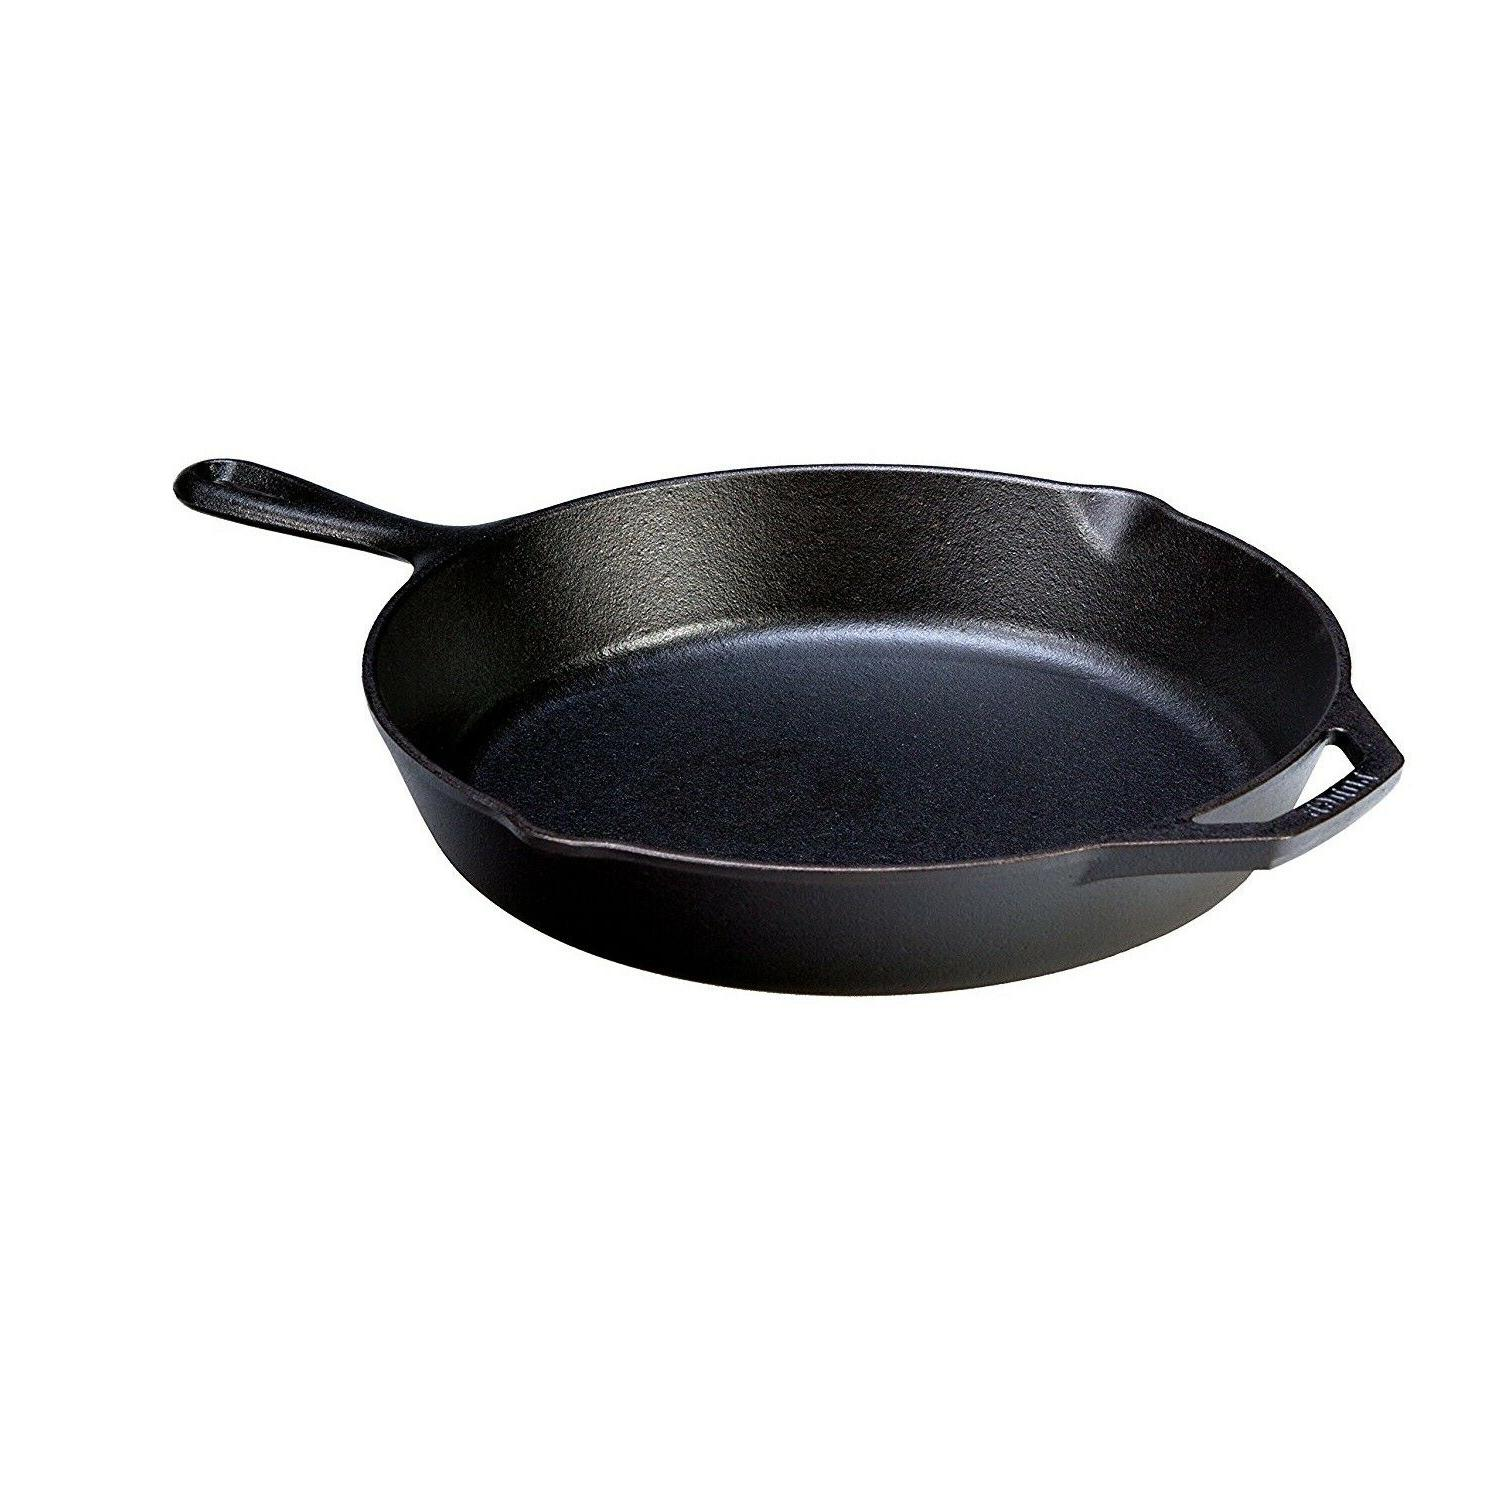 Pre-Seasoned 12 Inch Cast Iron Skillet Assist Handle Home Co